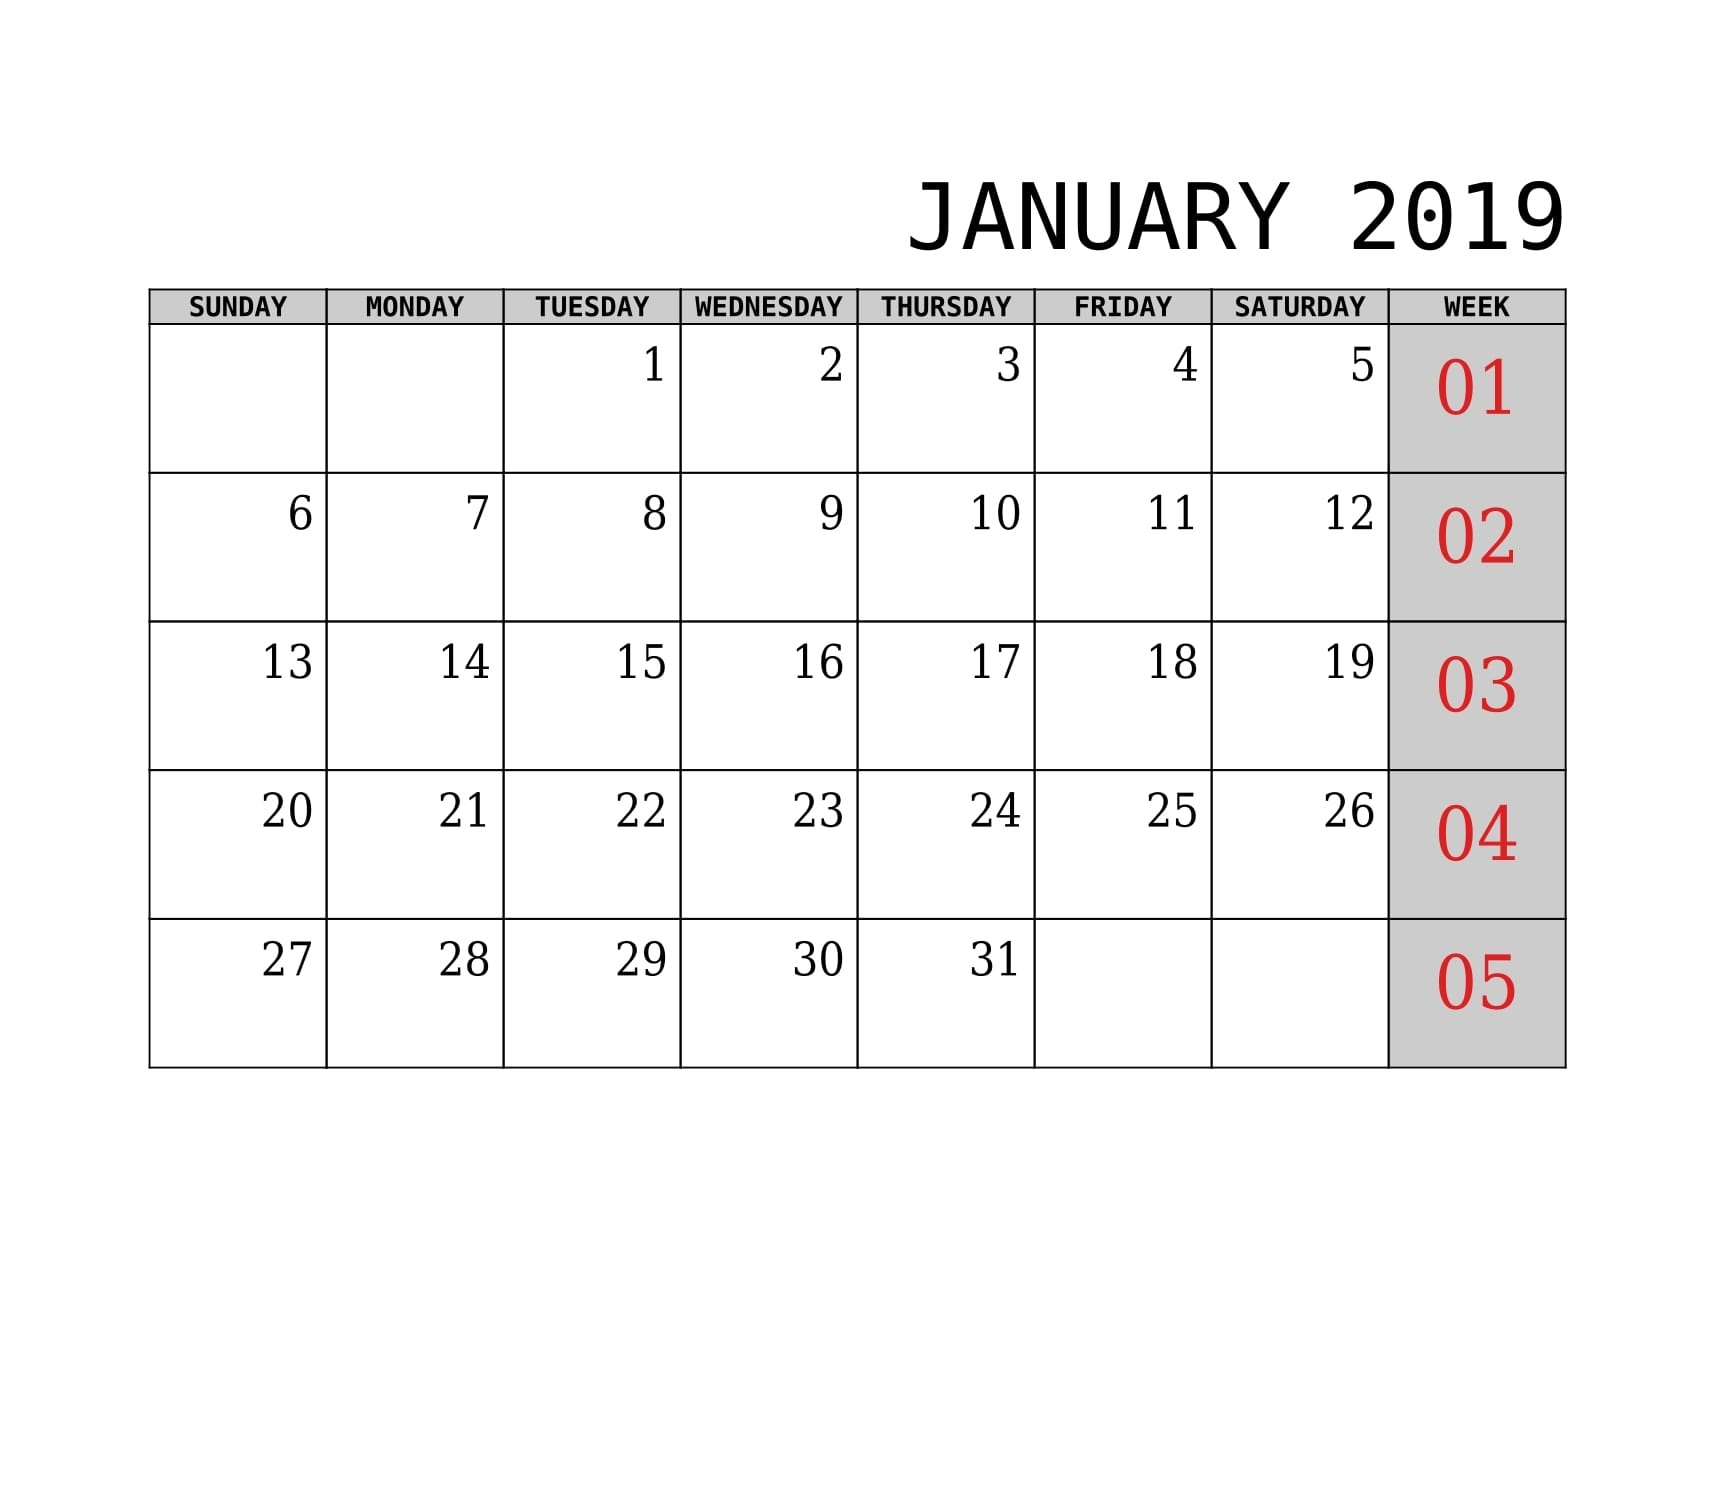 excel pdf word 2019 january printable::January 2019 Calendar Word